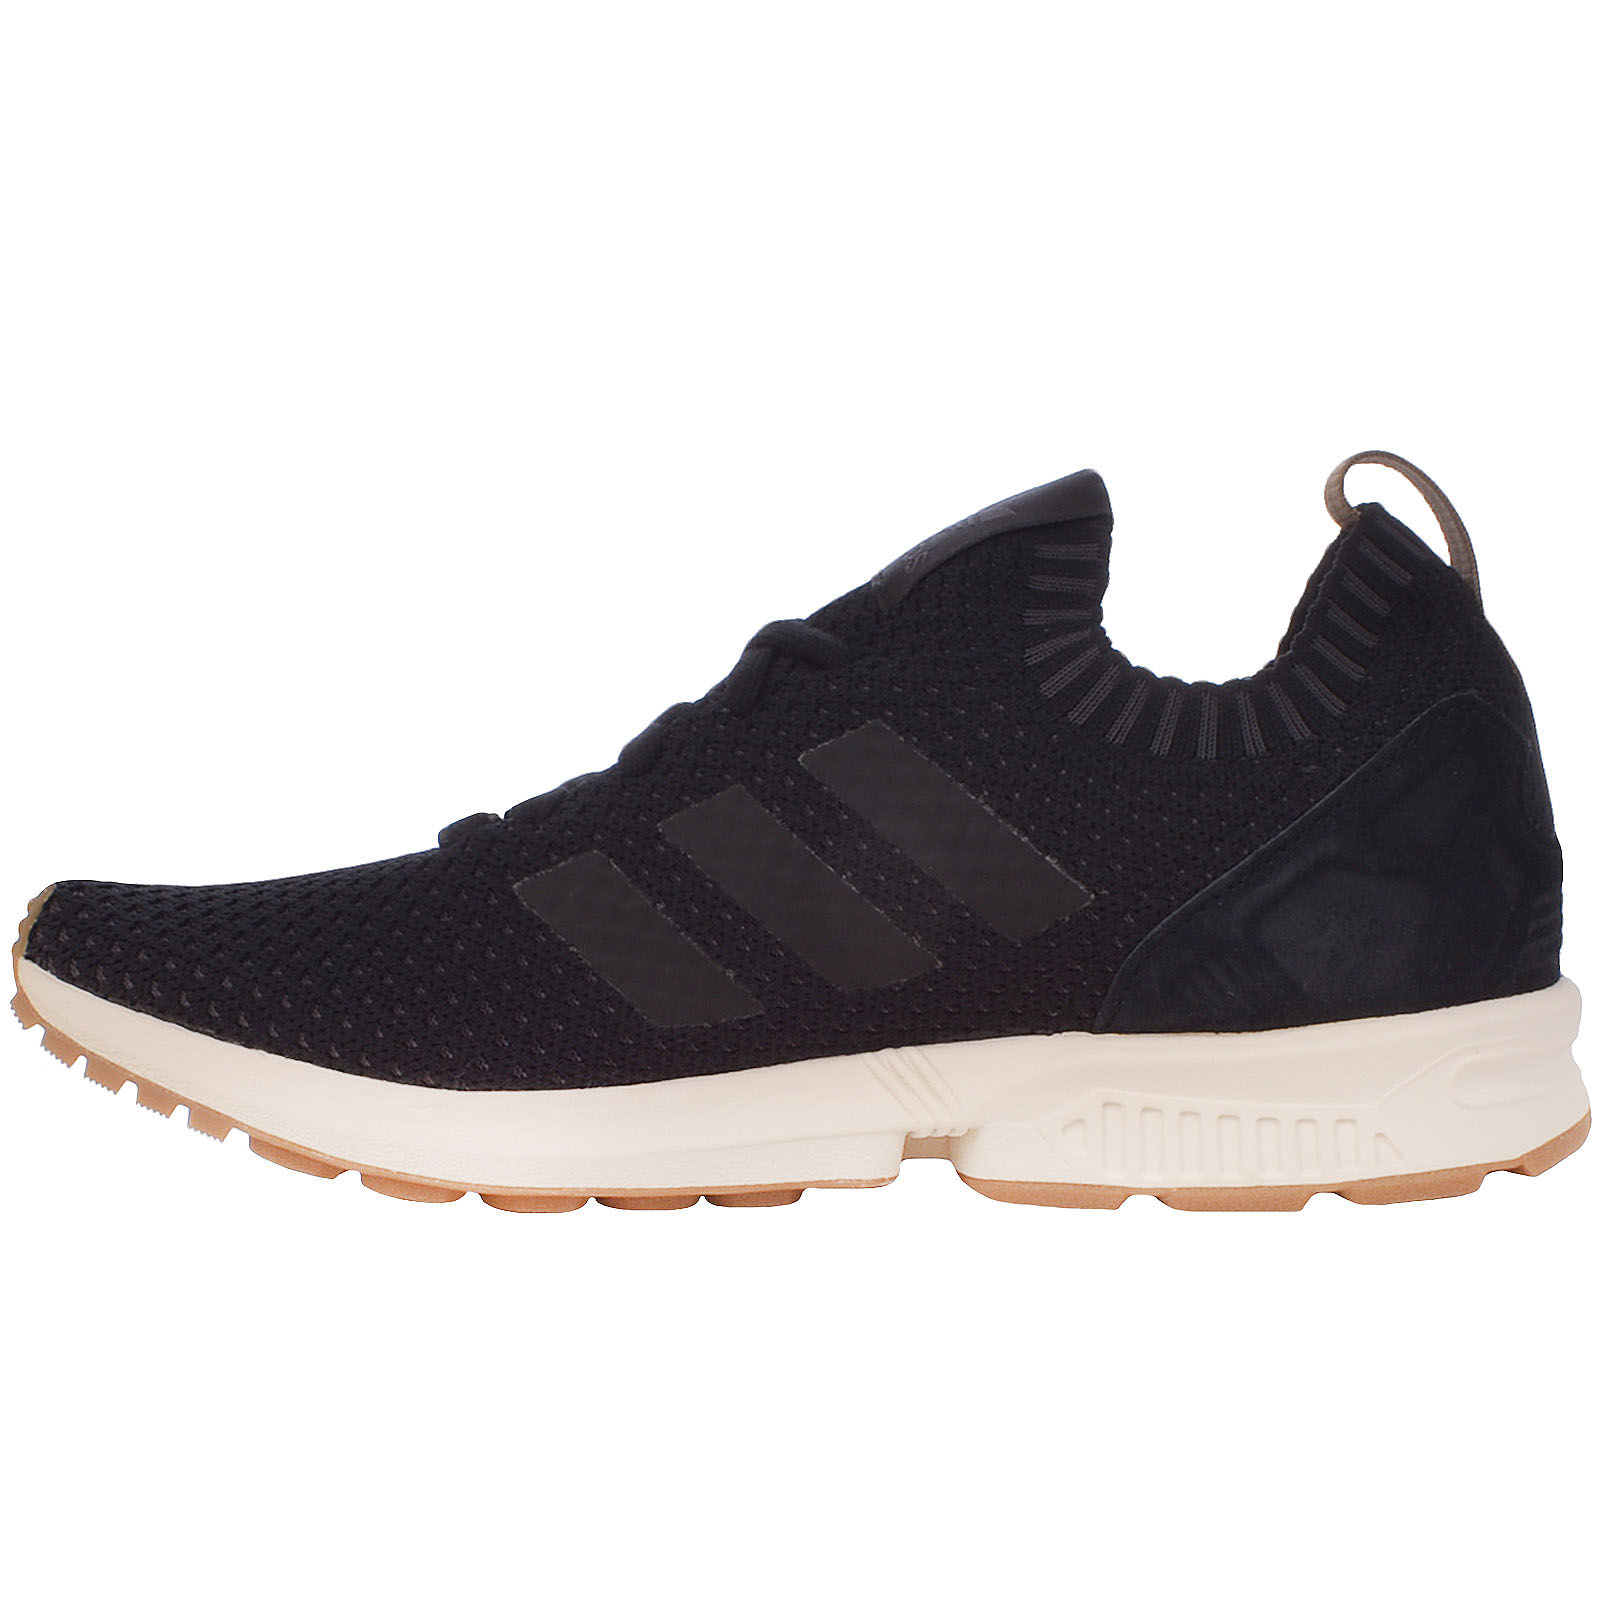 38036dd9e4b13 adidas Originals ZX Flux PK Shoes Trainers Black Ba7371 Sports 10. About  this product. Picture 1 of 5  Picture 2 of 5  Picture 3 of 5 ...